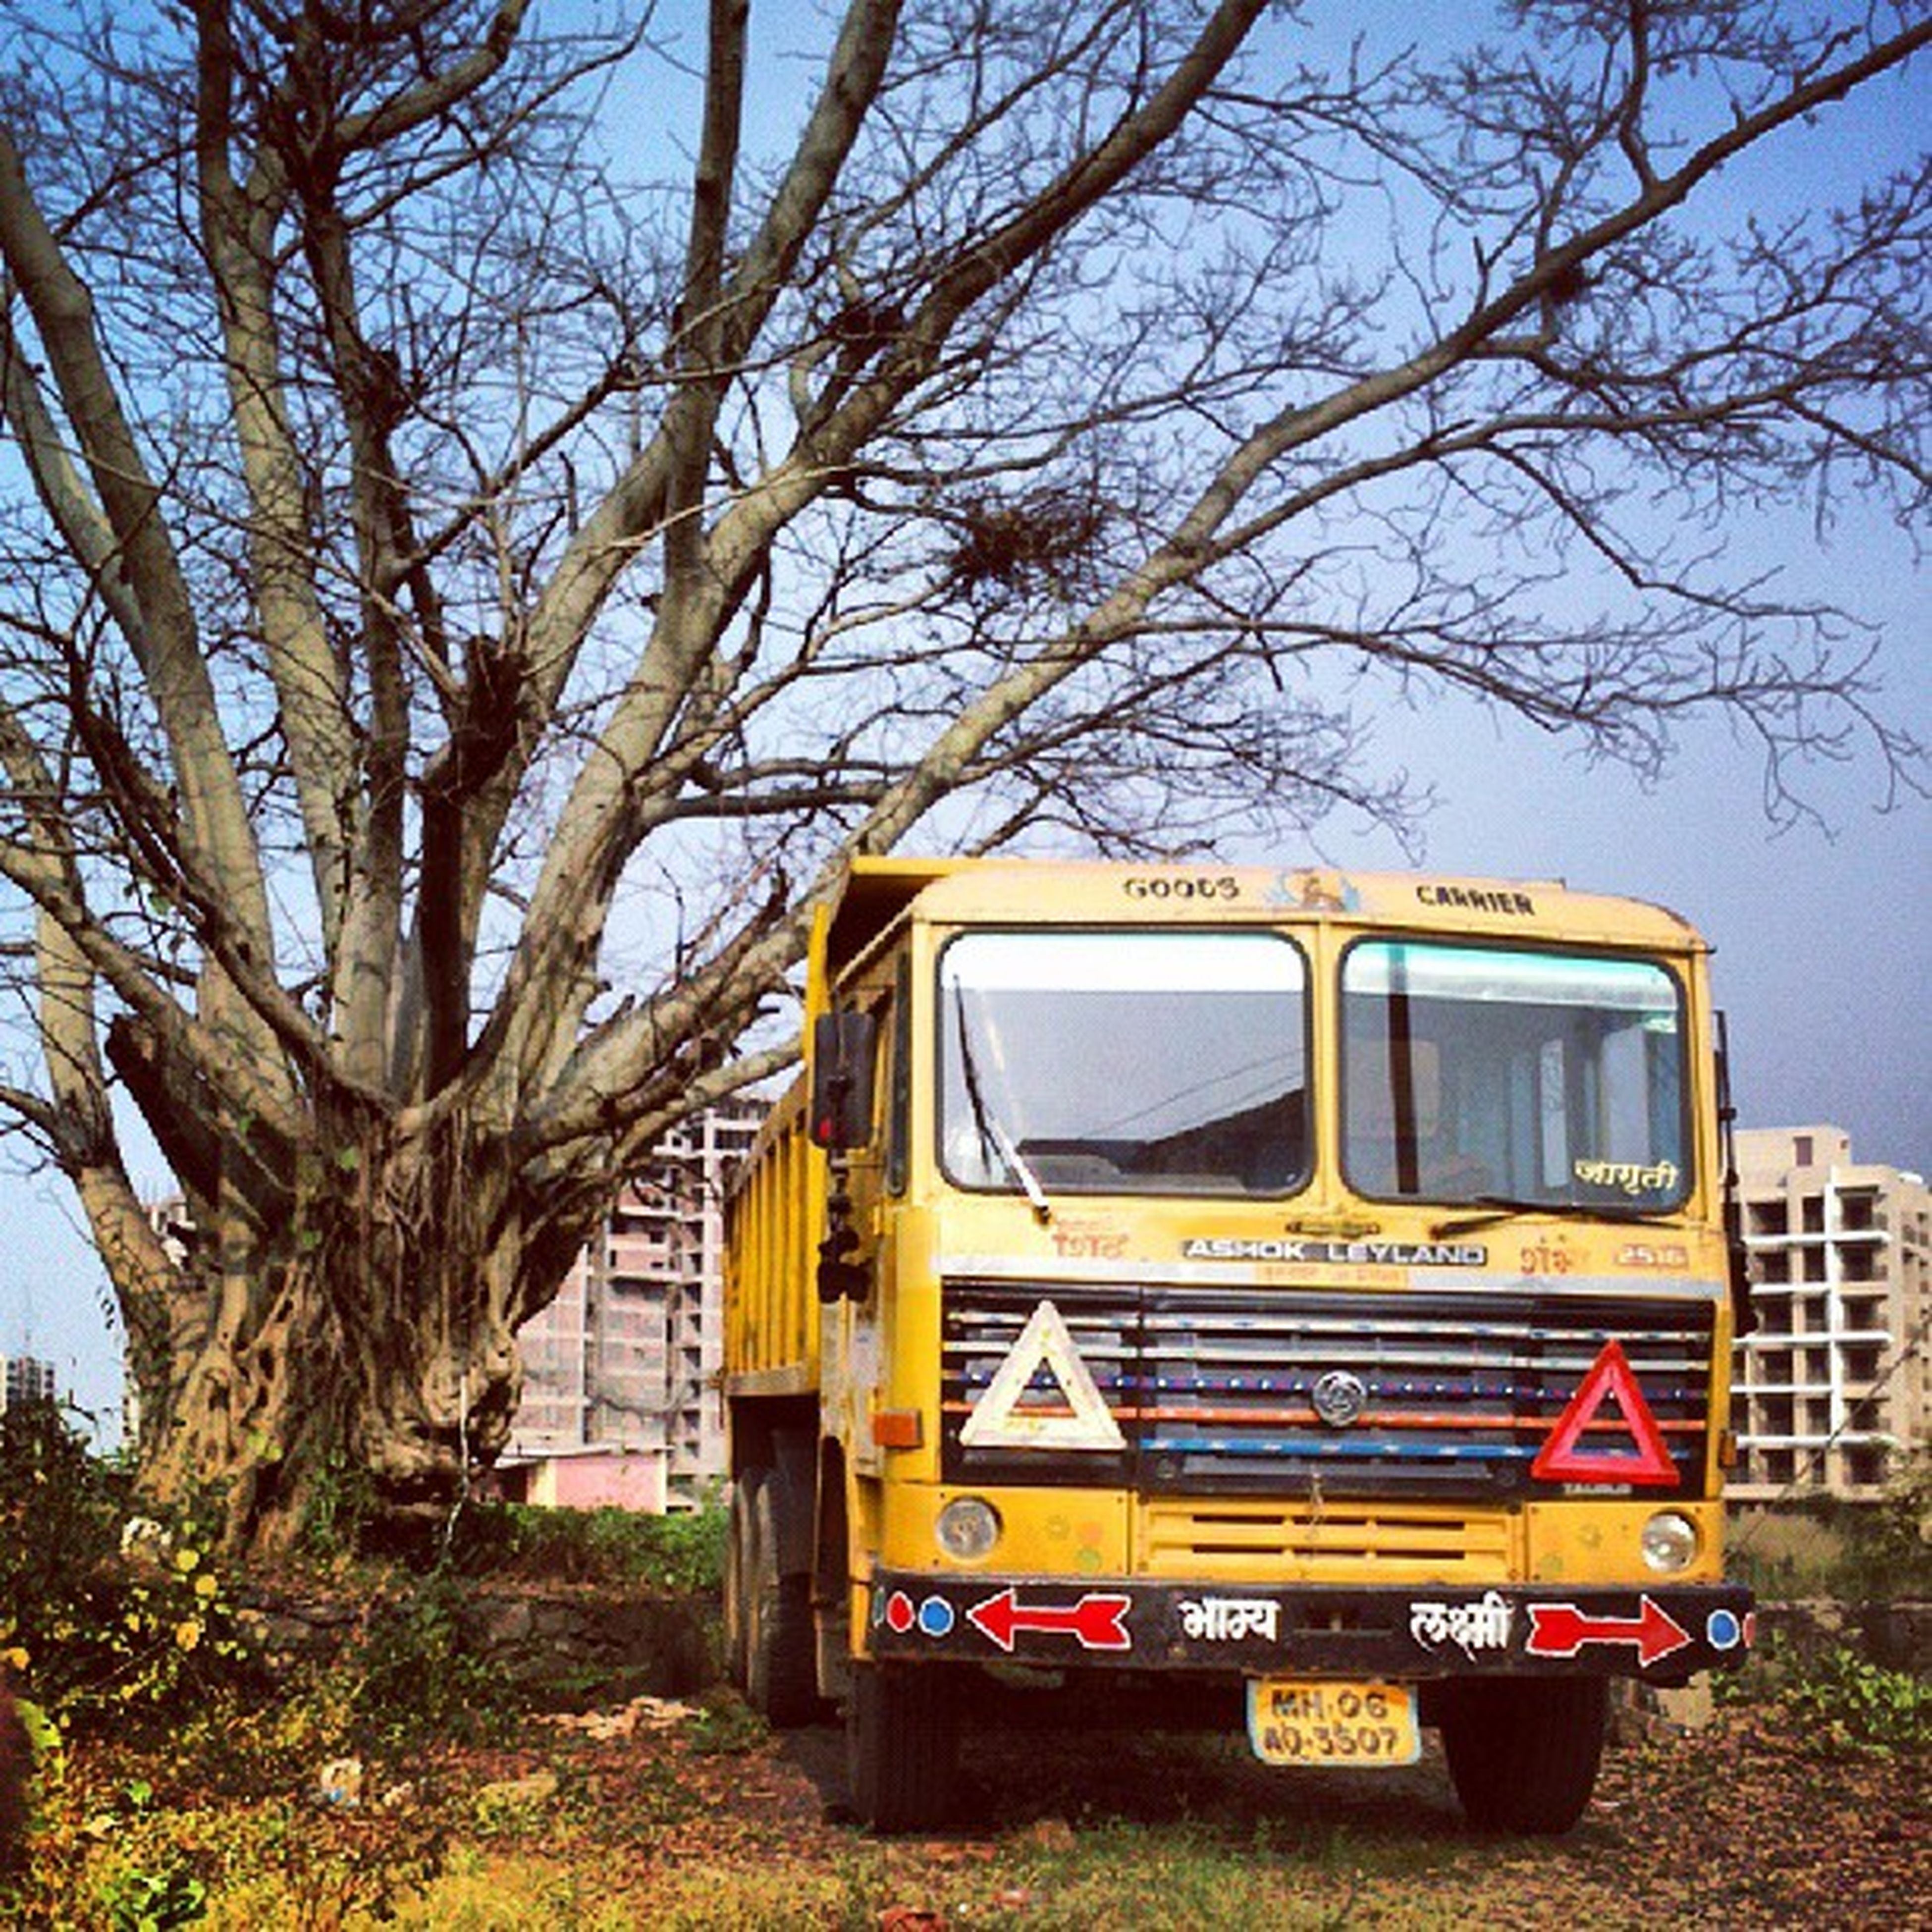 transportation, mode of transport, land vehicle, tree, car, building exterior, architecture, built structure, stationary, yellow, bare tree, day, sky, outdoors, no people, parking, travel, clear sky, parked, sunlight